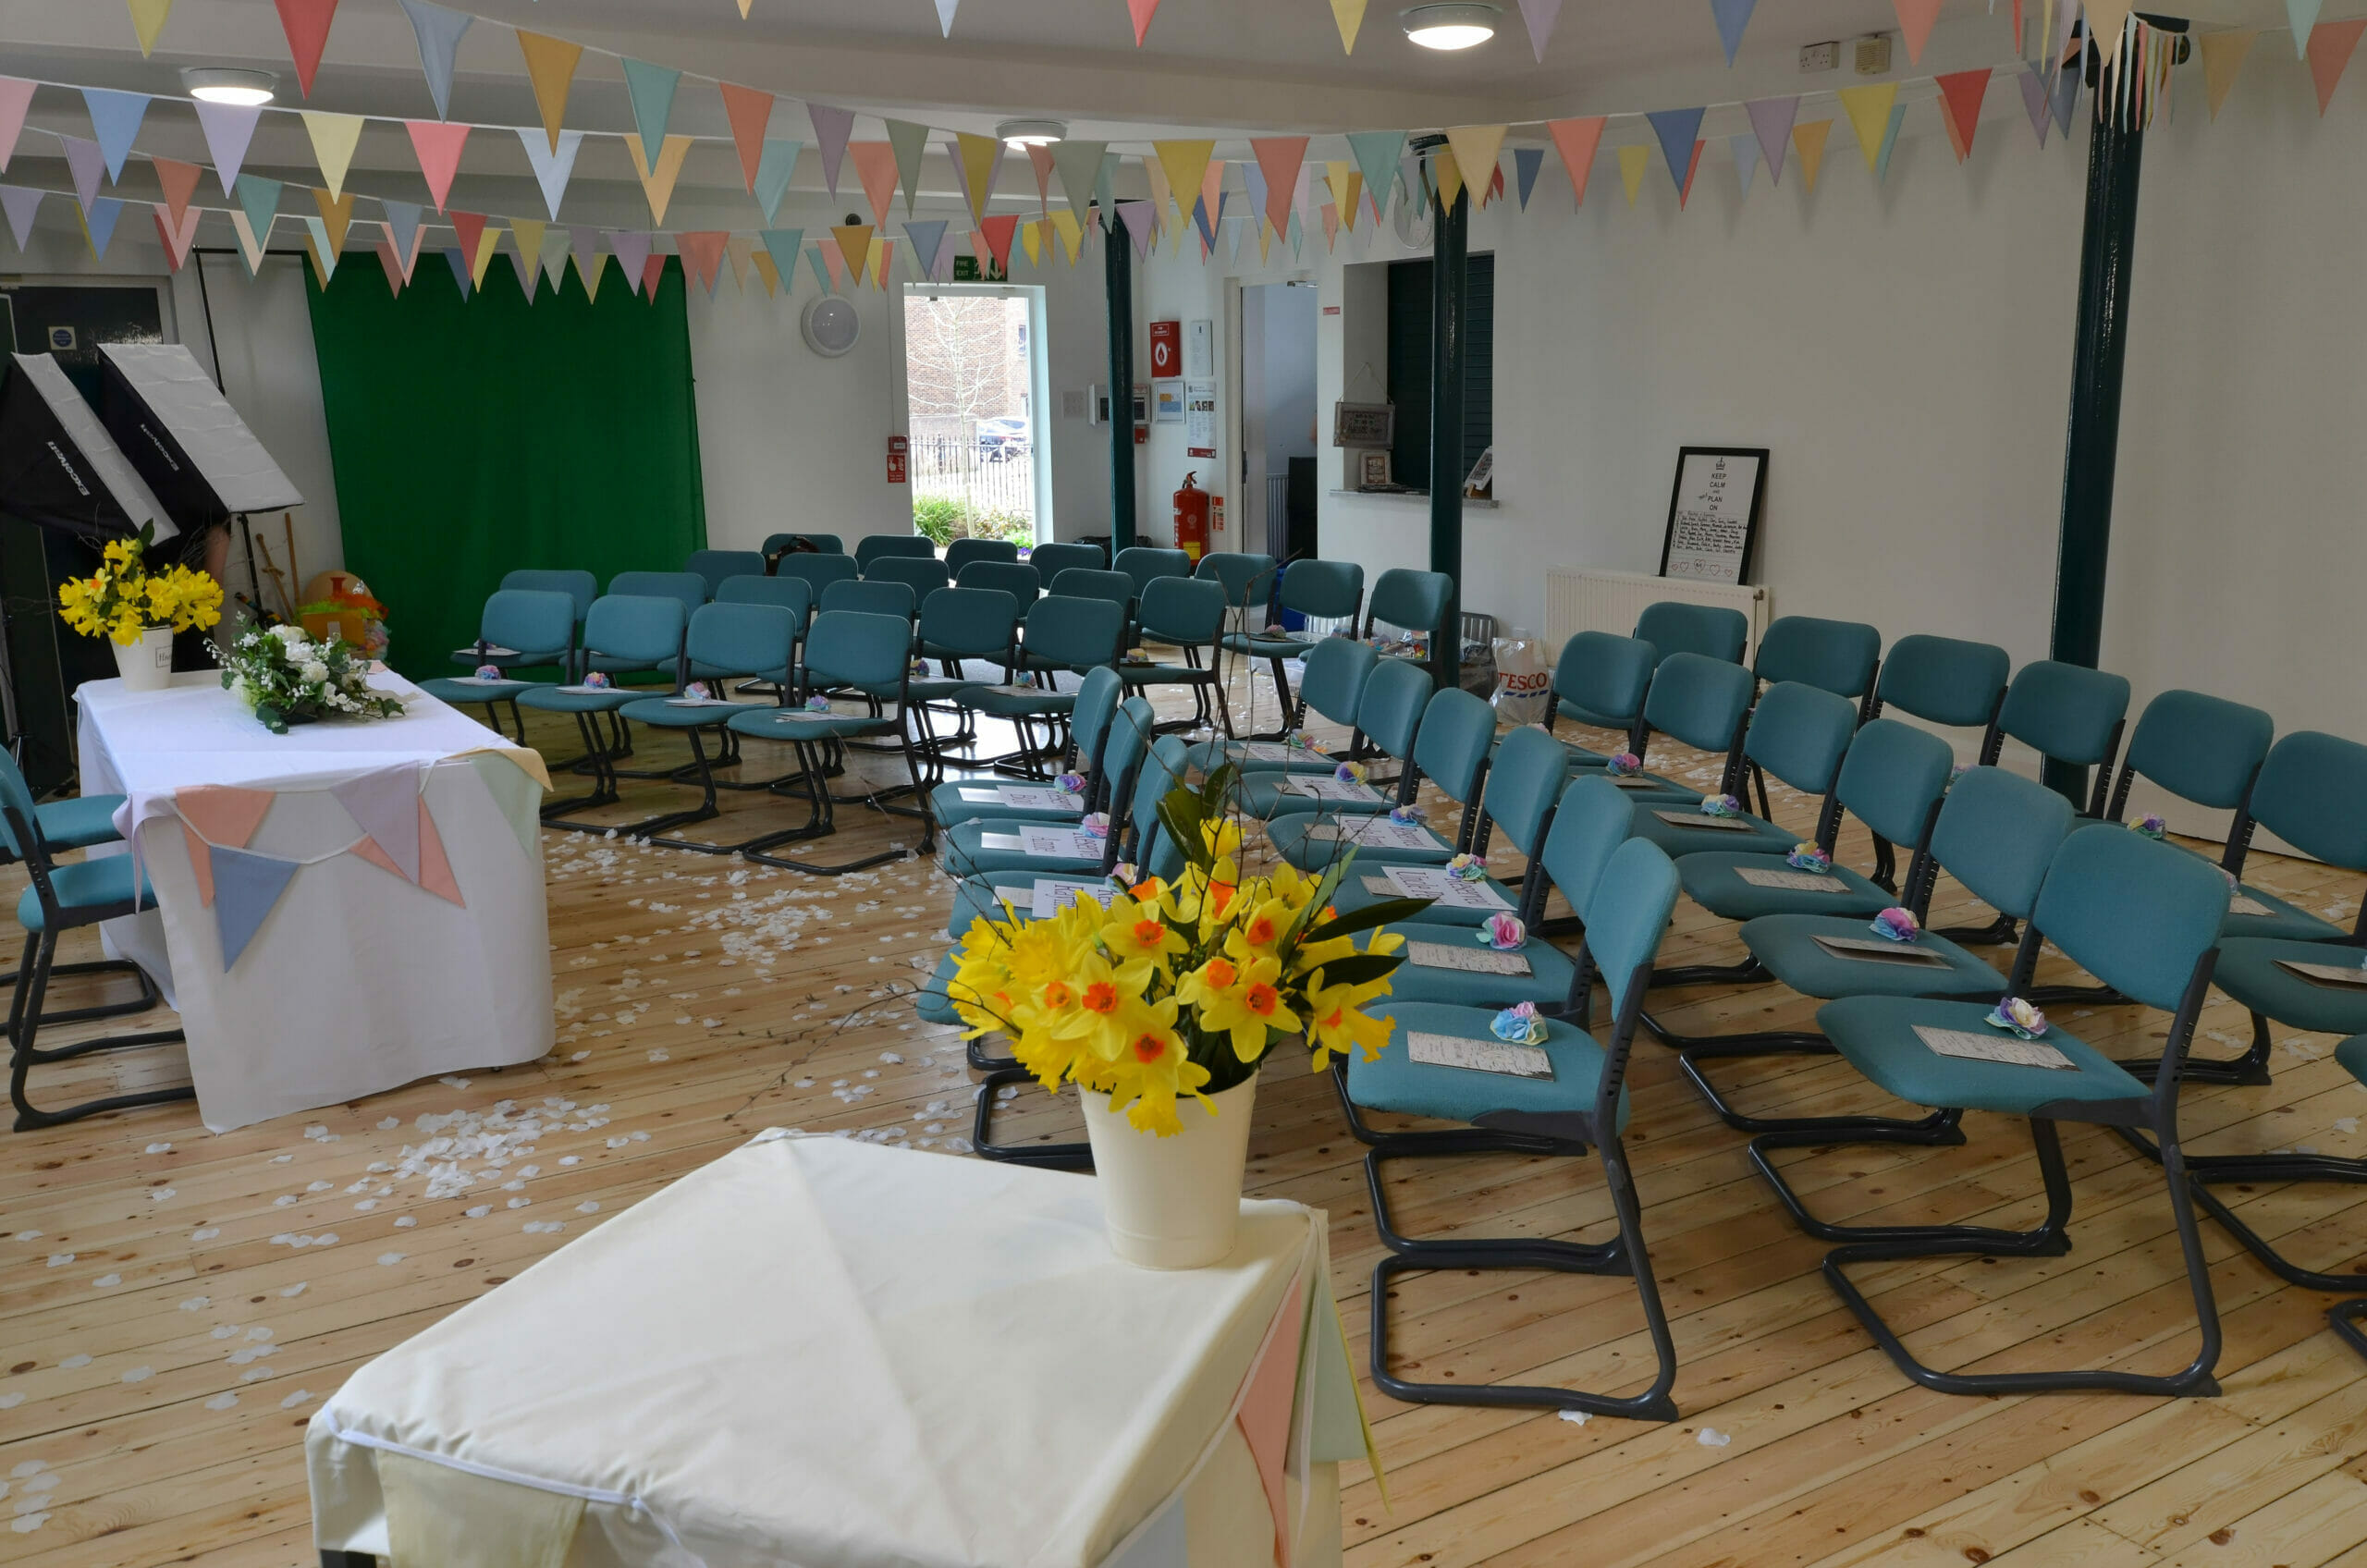 Photo shows a room layout with chairs and bunting